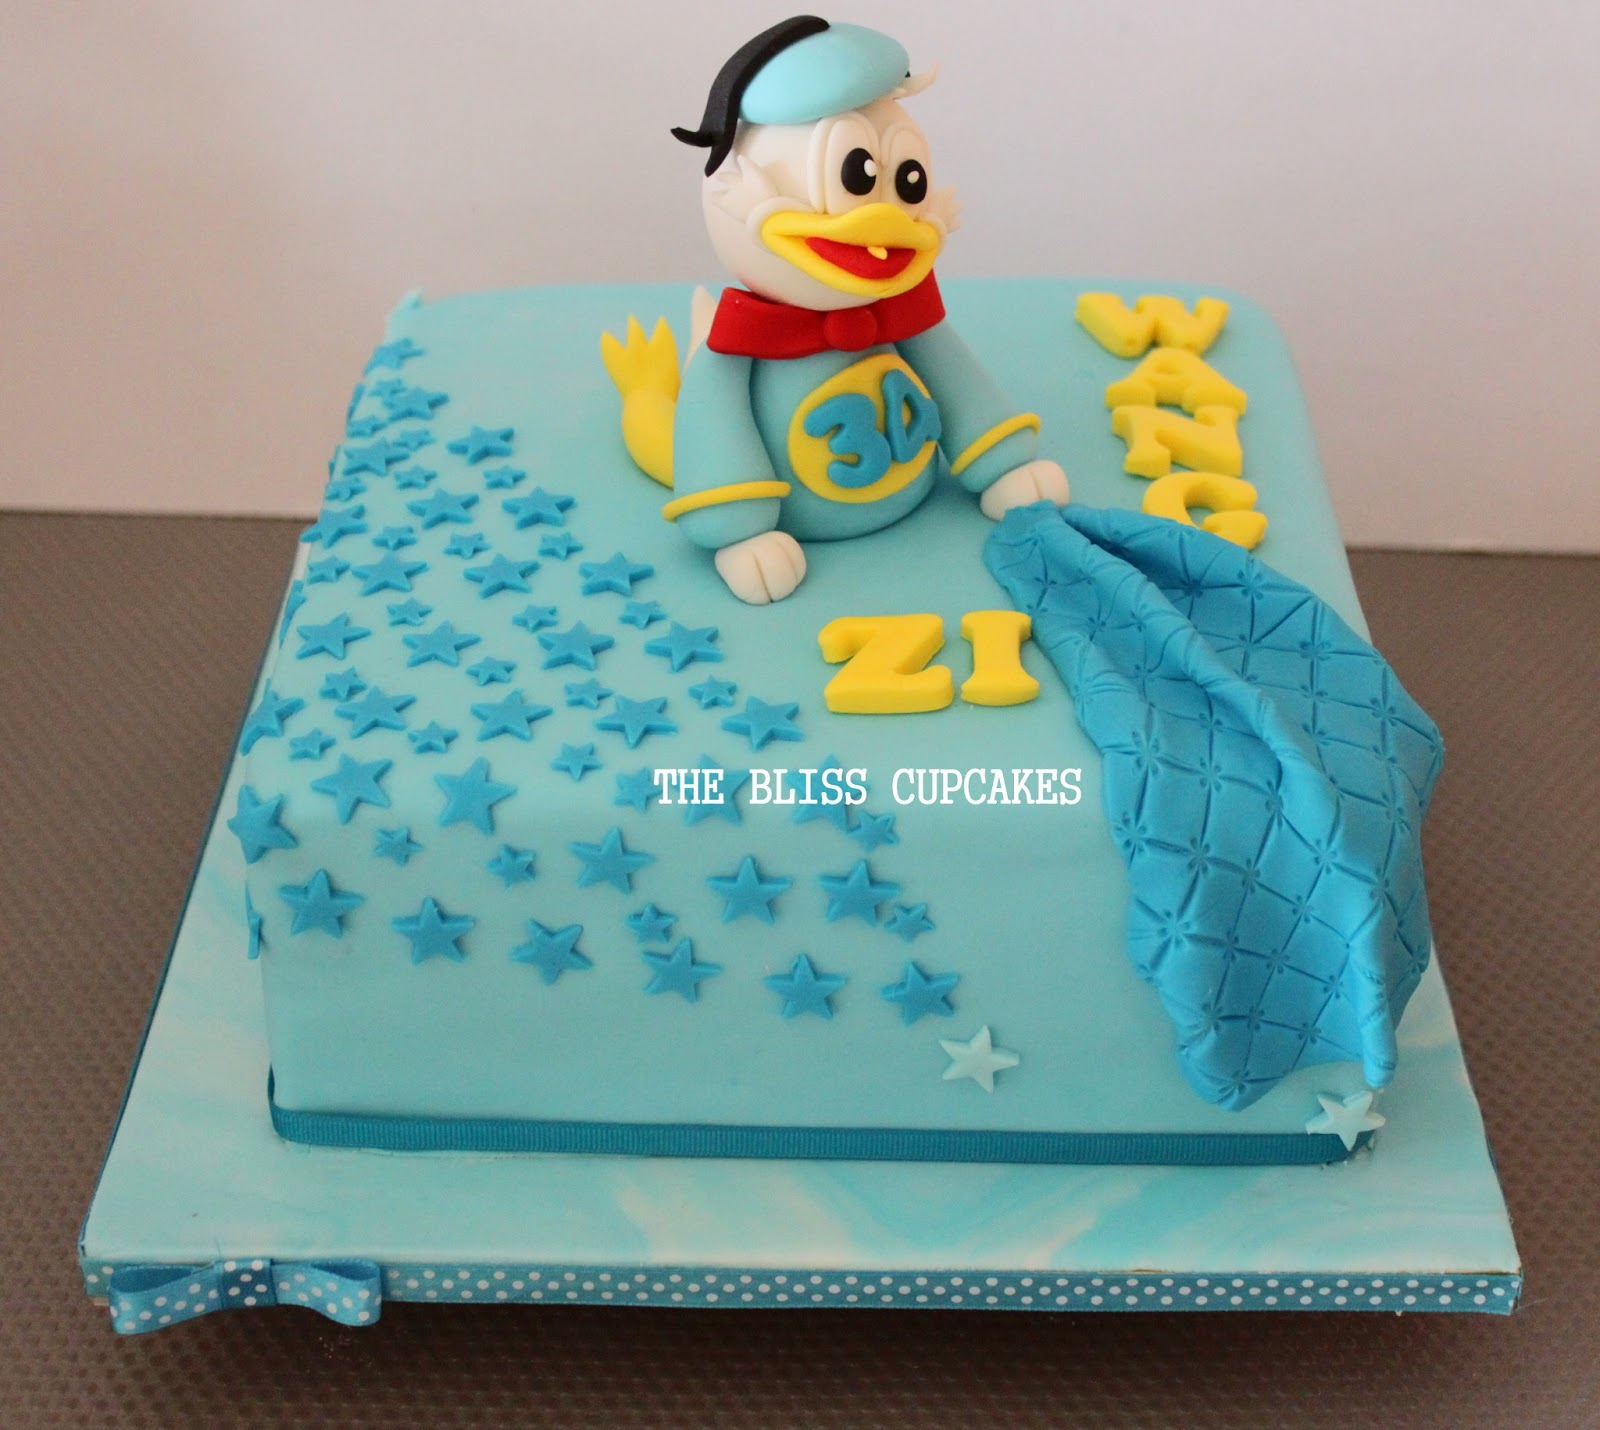 The Bliss Cupcakes Donald Duck Birthday Cake